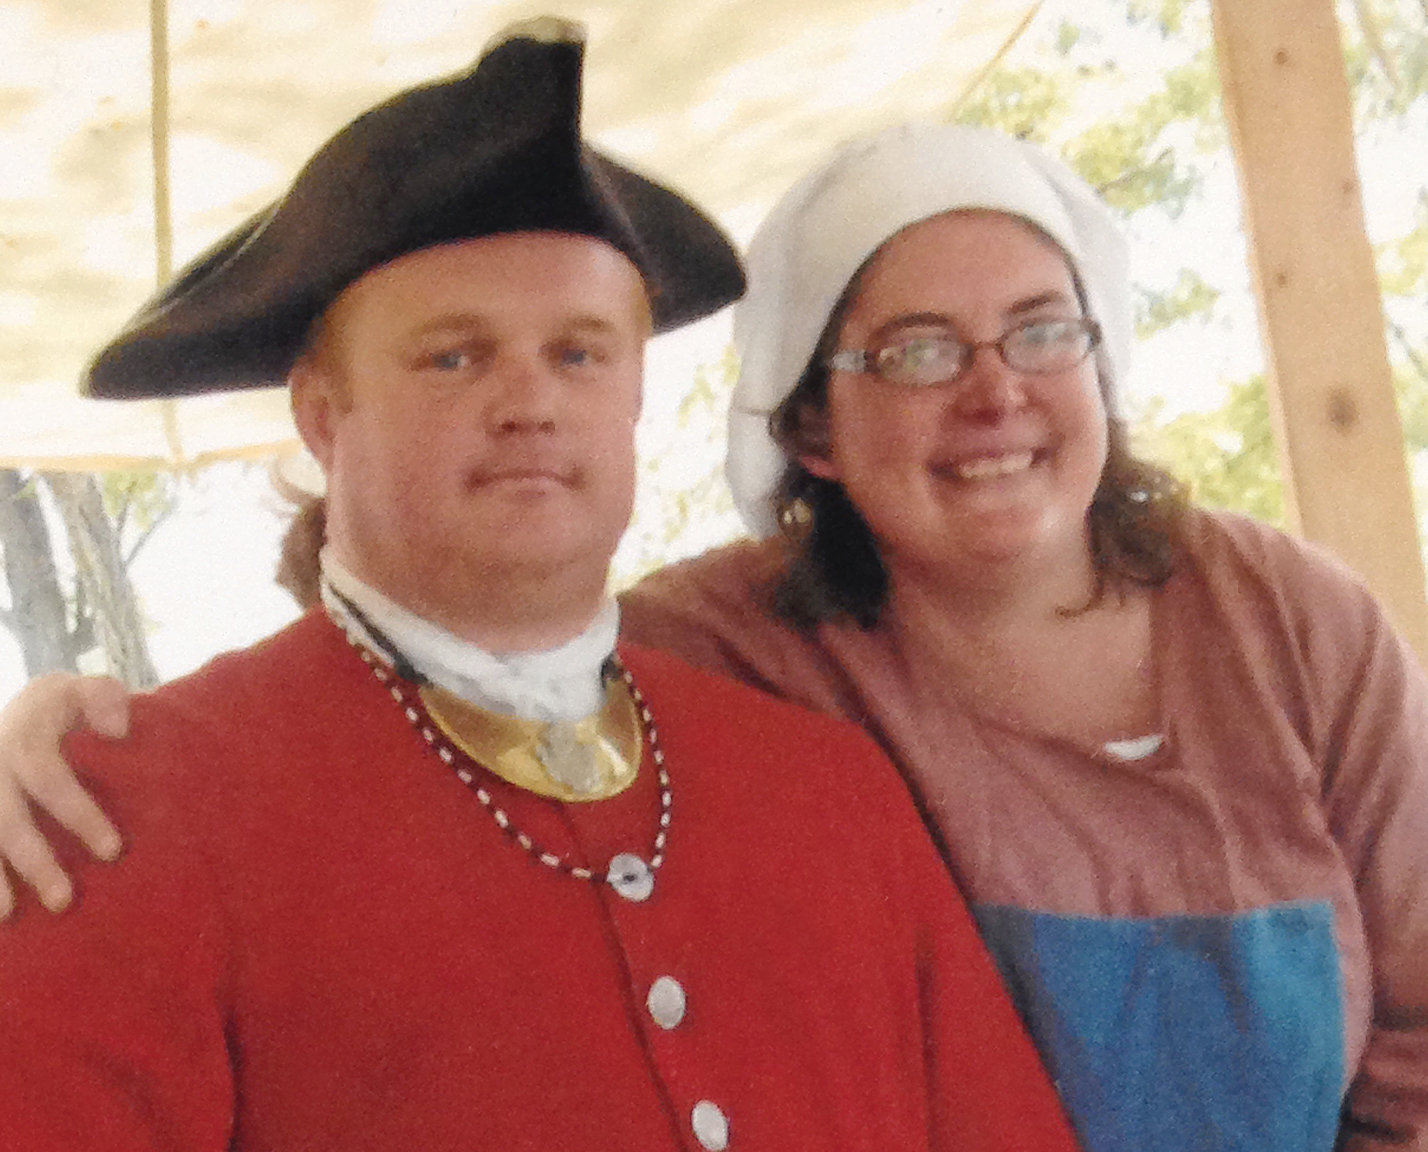 Freetime: Steven Perkins, Black River Paper Company, Becomes French And Indian War Re-enactor